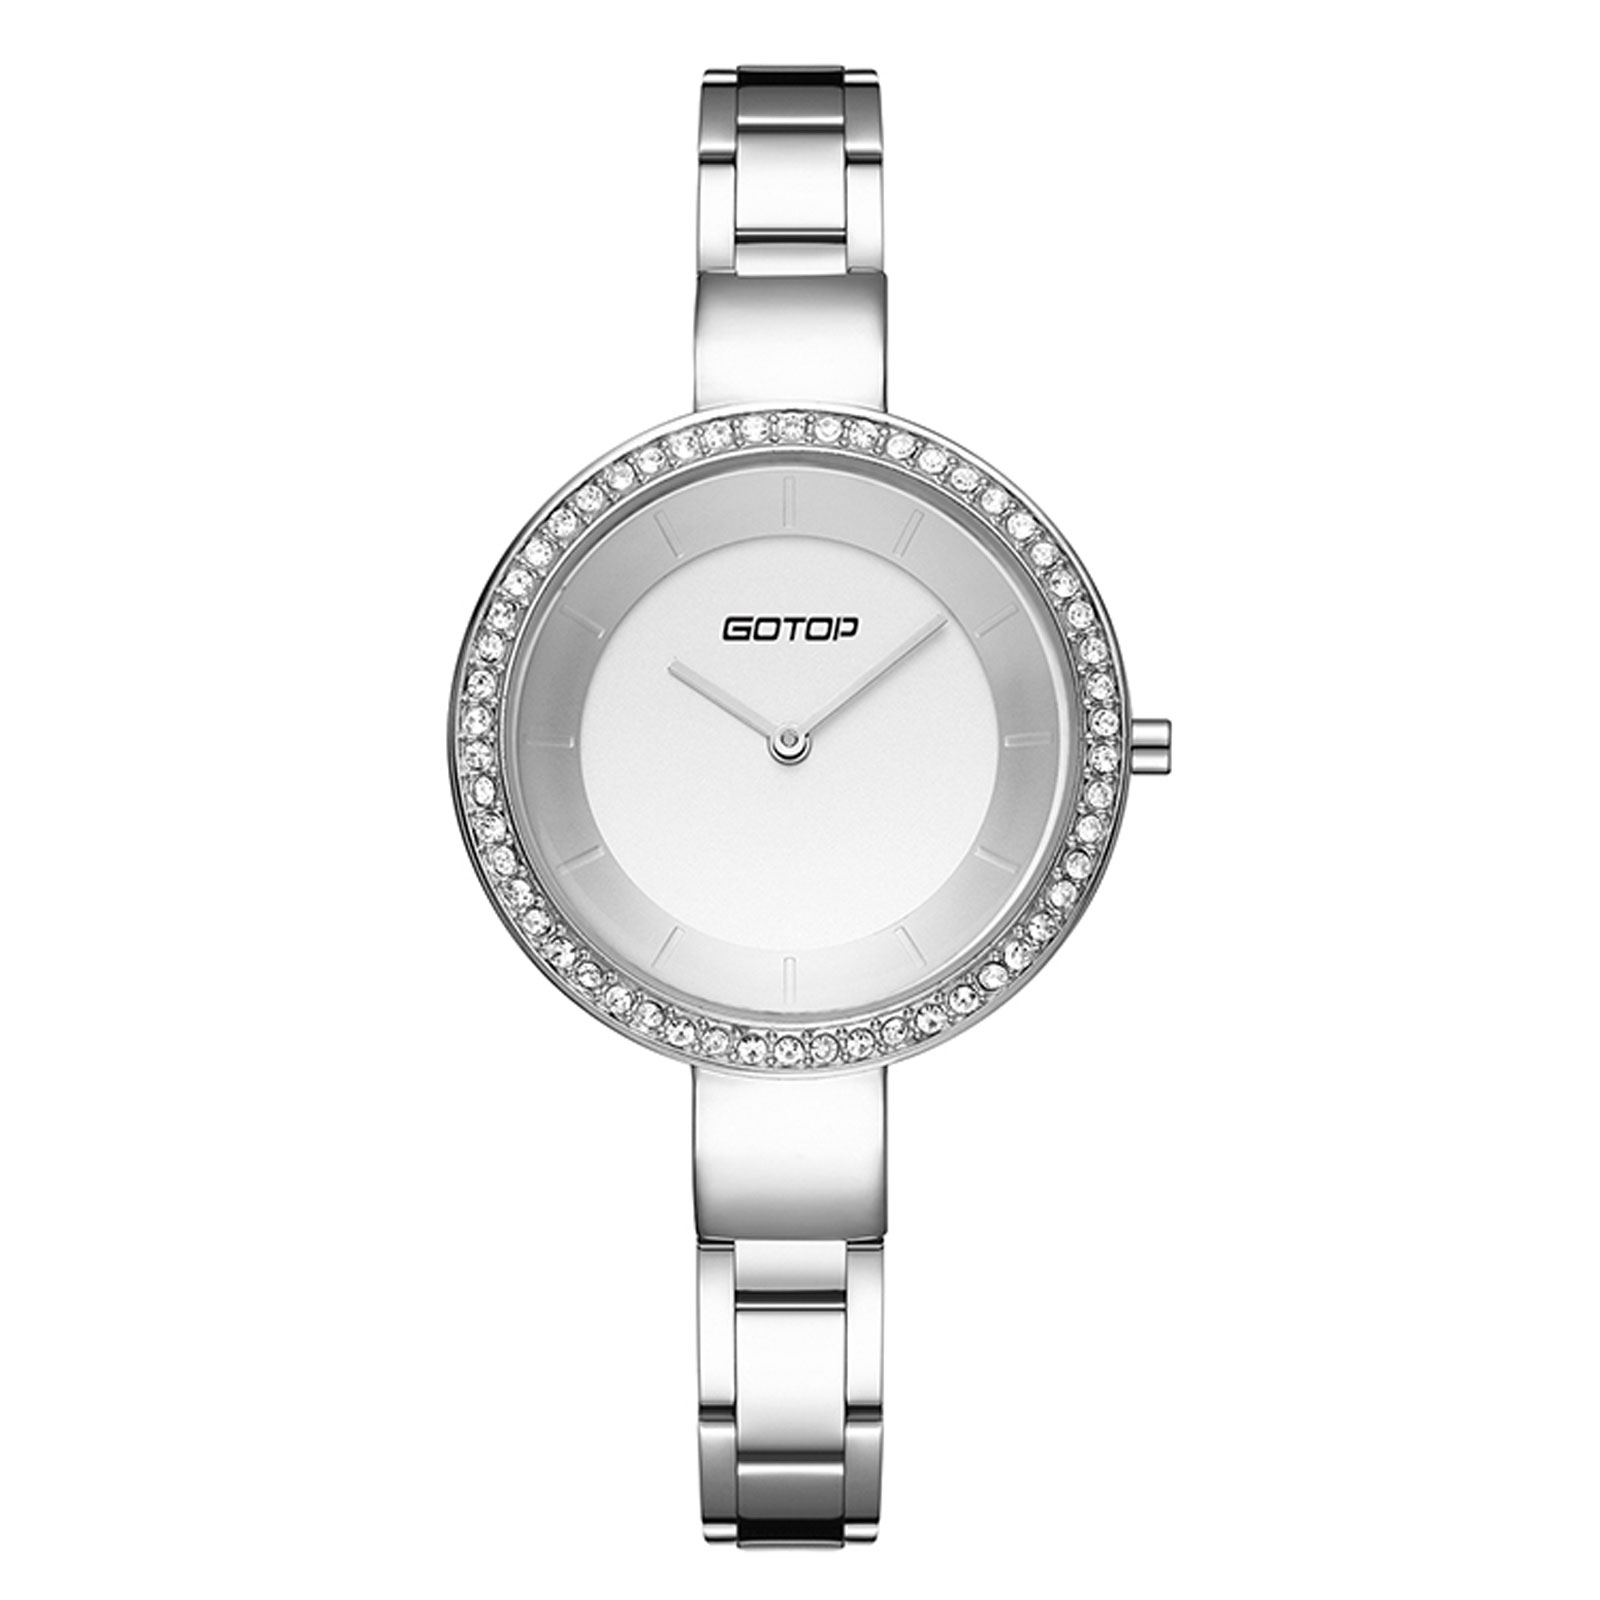 Polished Silver Finish Stainless Steel Women's Watch